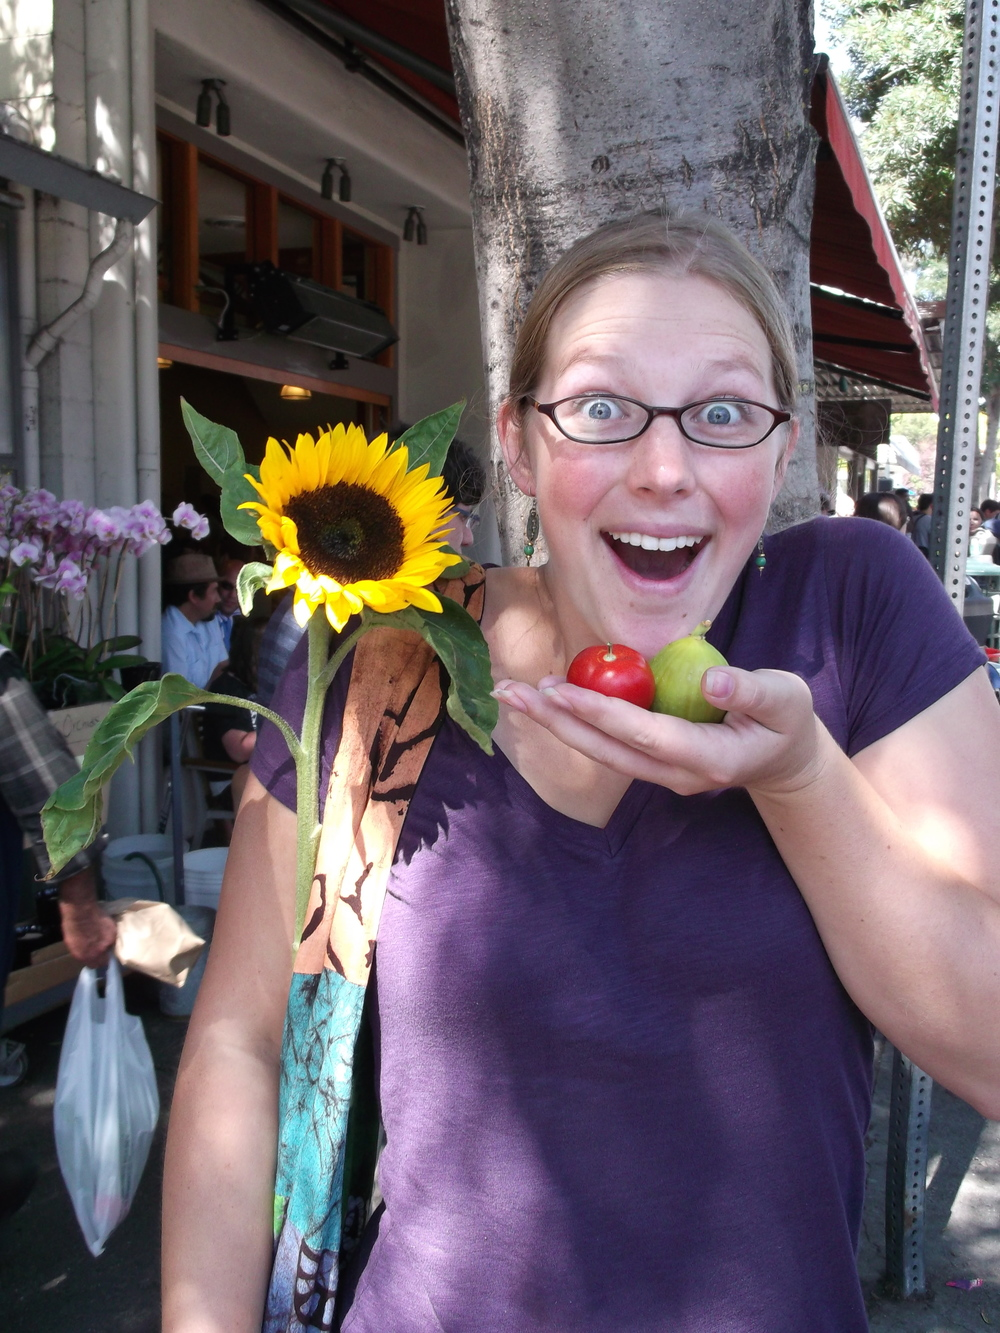 Advice for being a houseguest: bring a gift. (In this case, a sunflower, tomato, and fig from the Berkeley farmer's market. Also the goofiest face possible.)